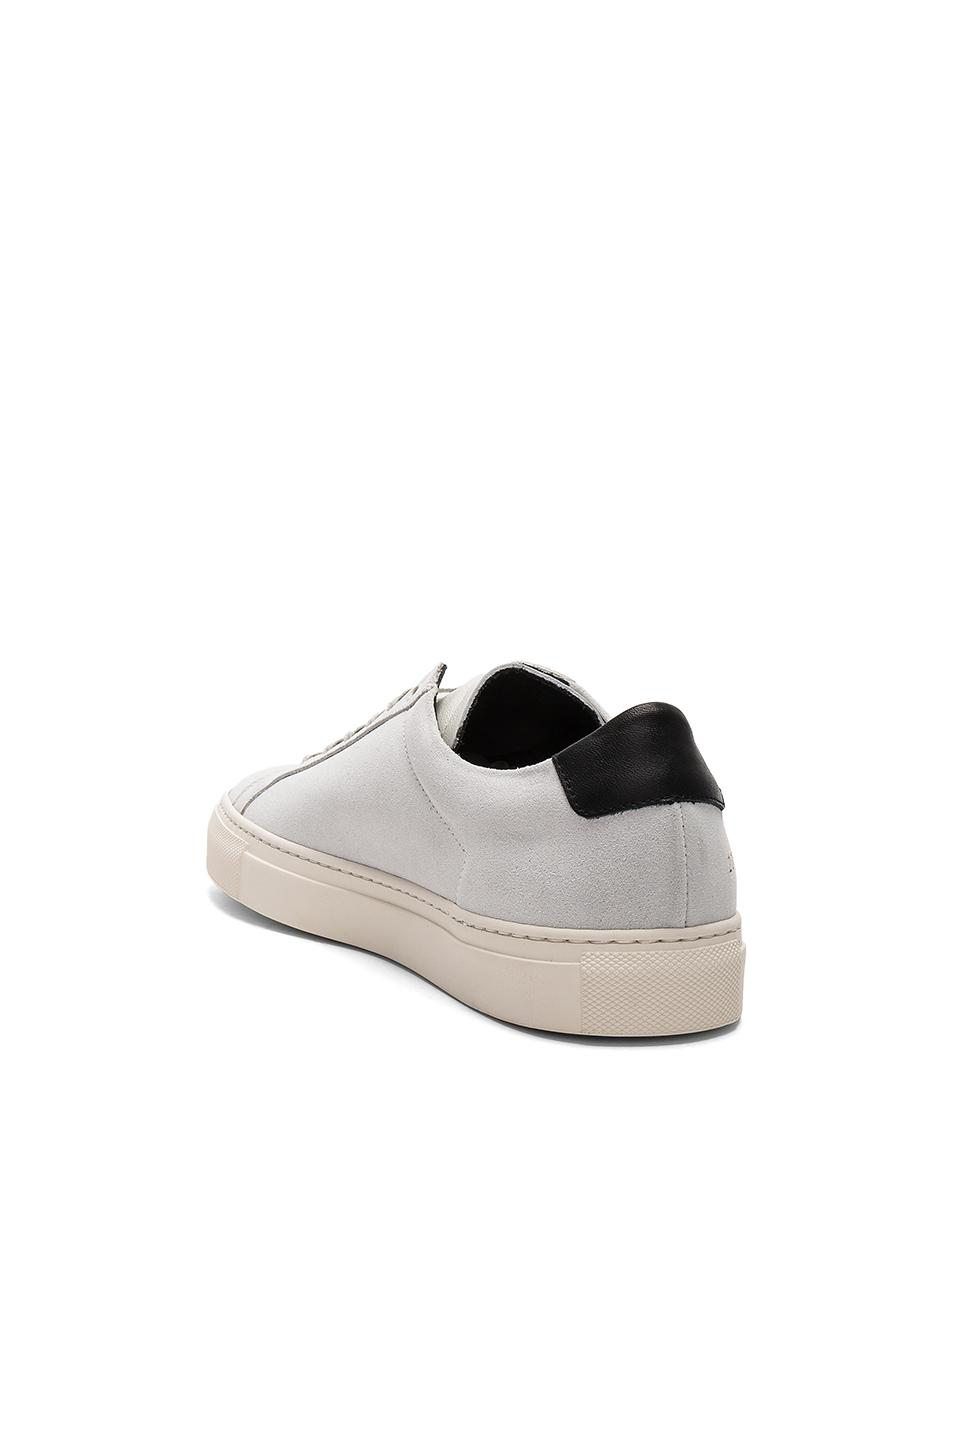 lyst common projects achilles retro low suede in white. Black Bedroom Furniture Sets. Home Design Ideas